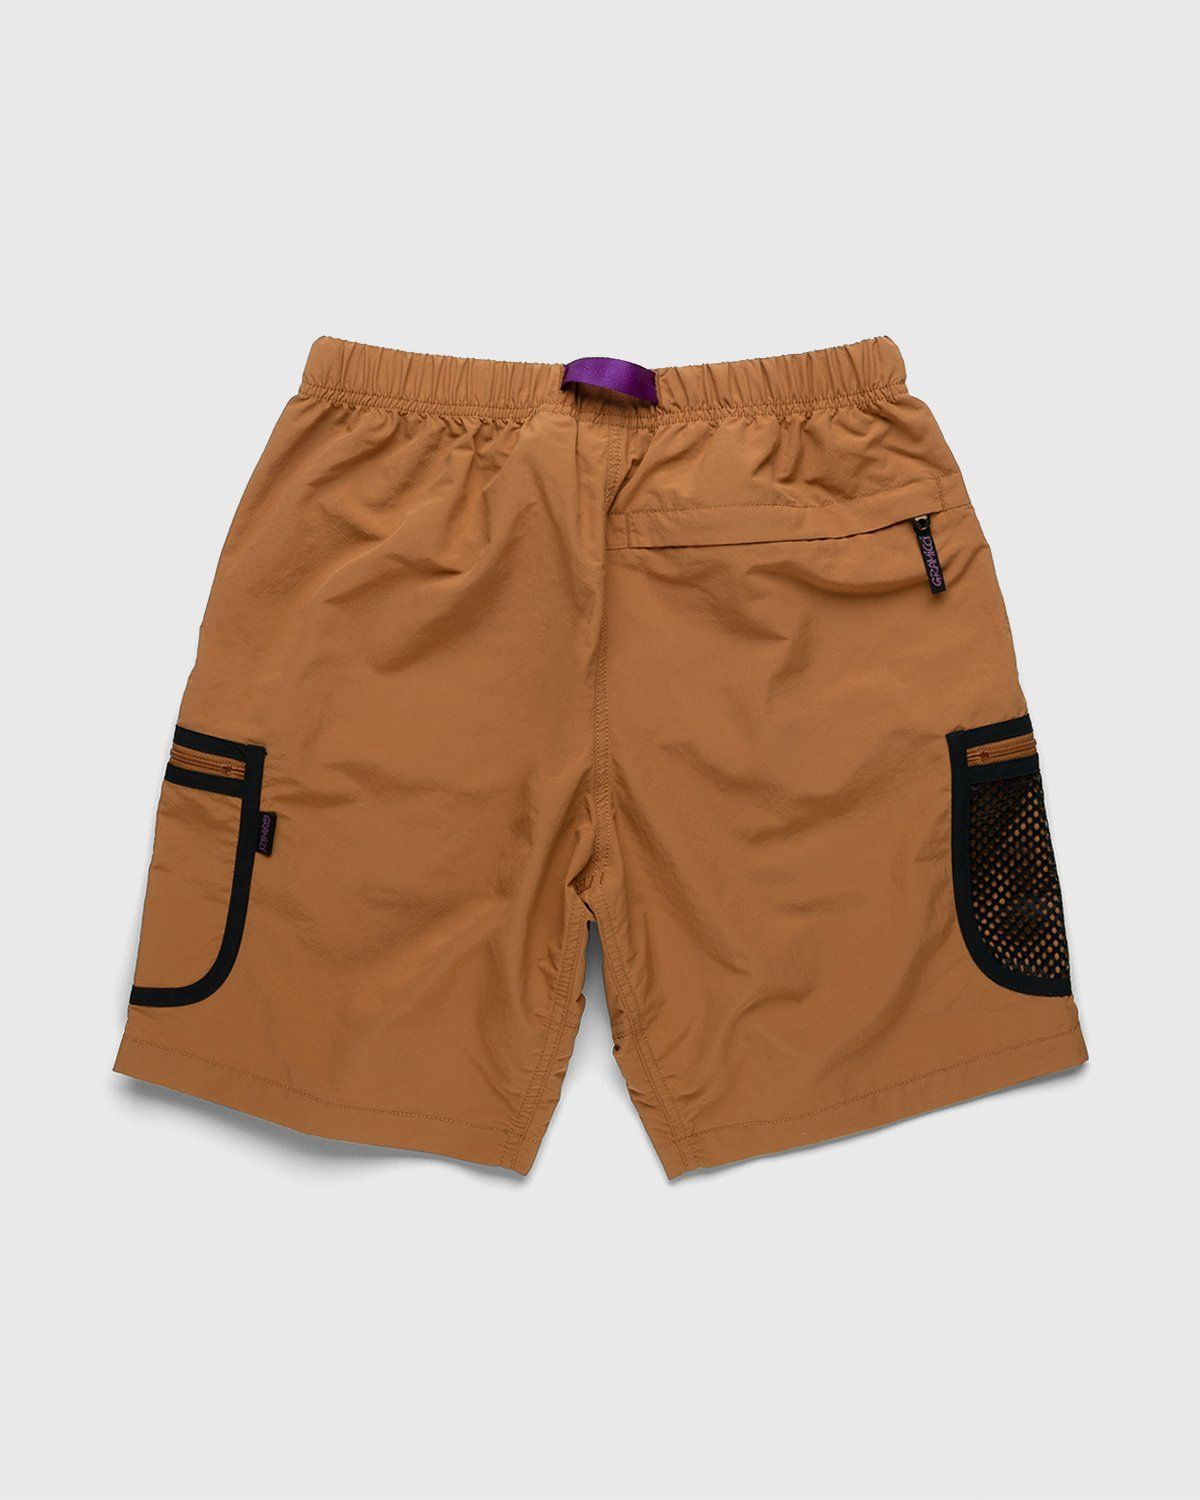 Gramicci for Highsnobiety – Shorts Rust - Image 2